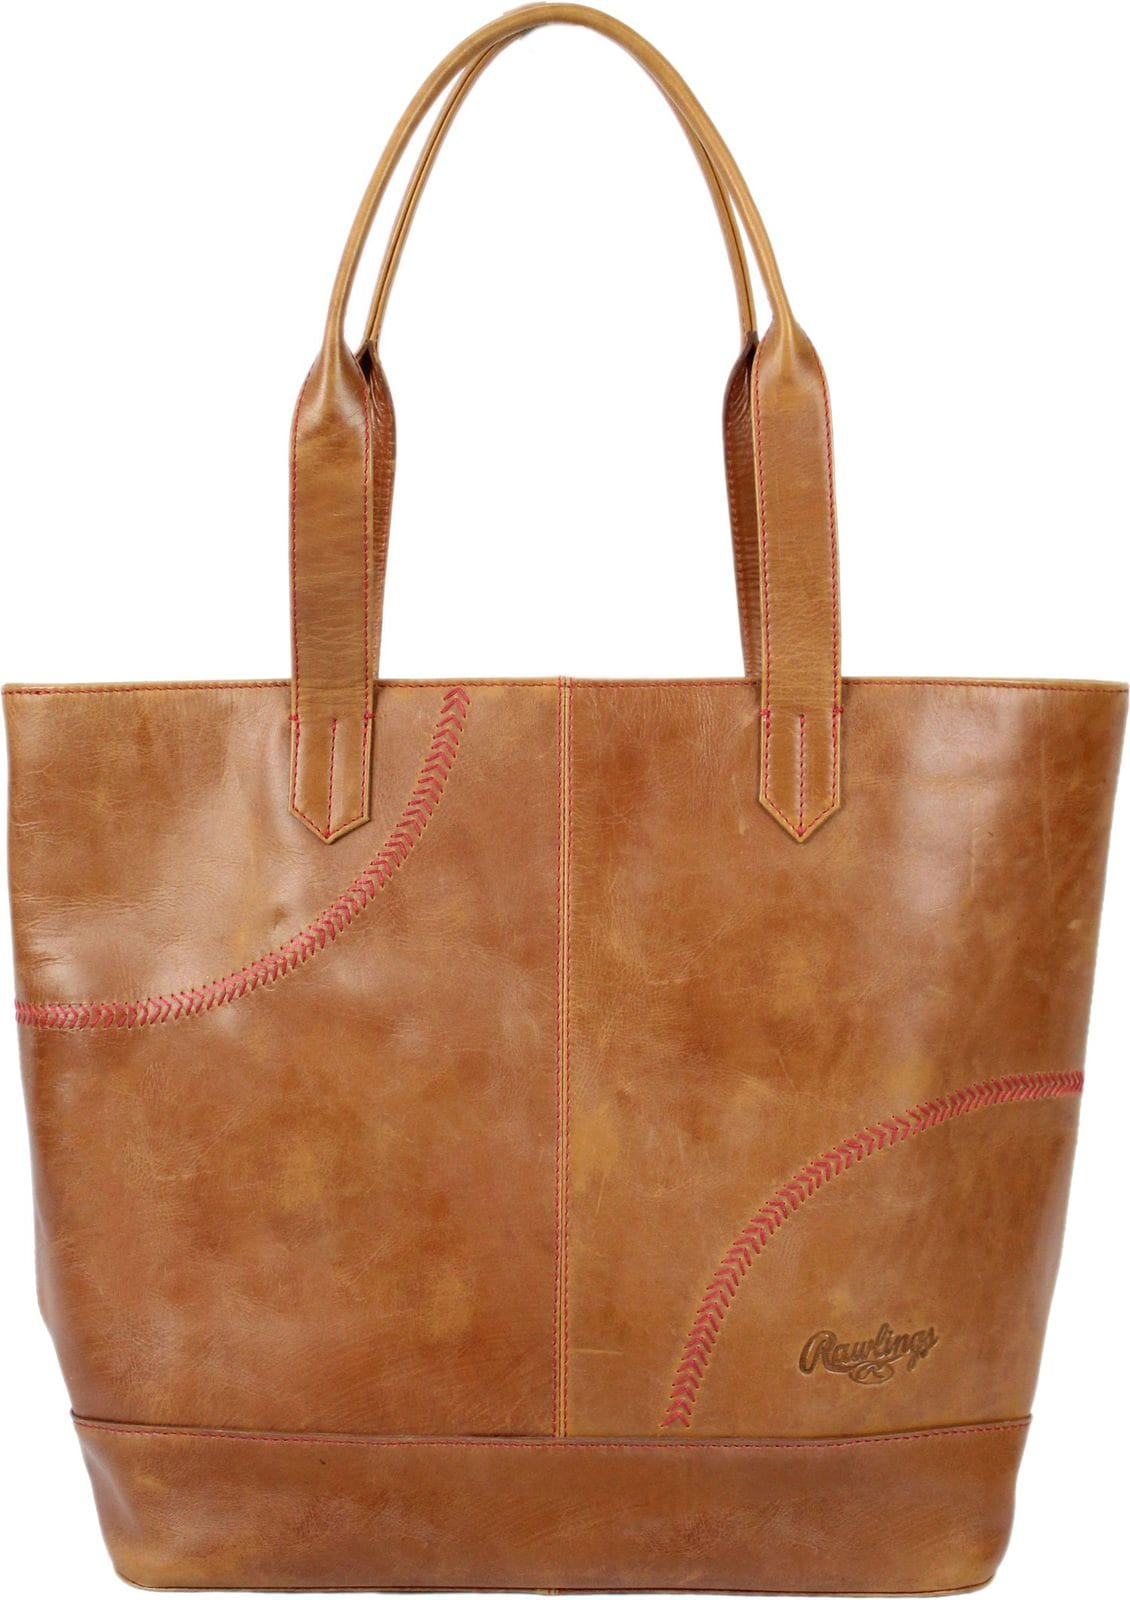 Rawlings leather tote bag